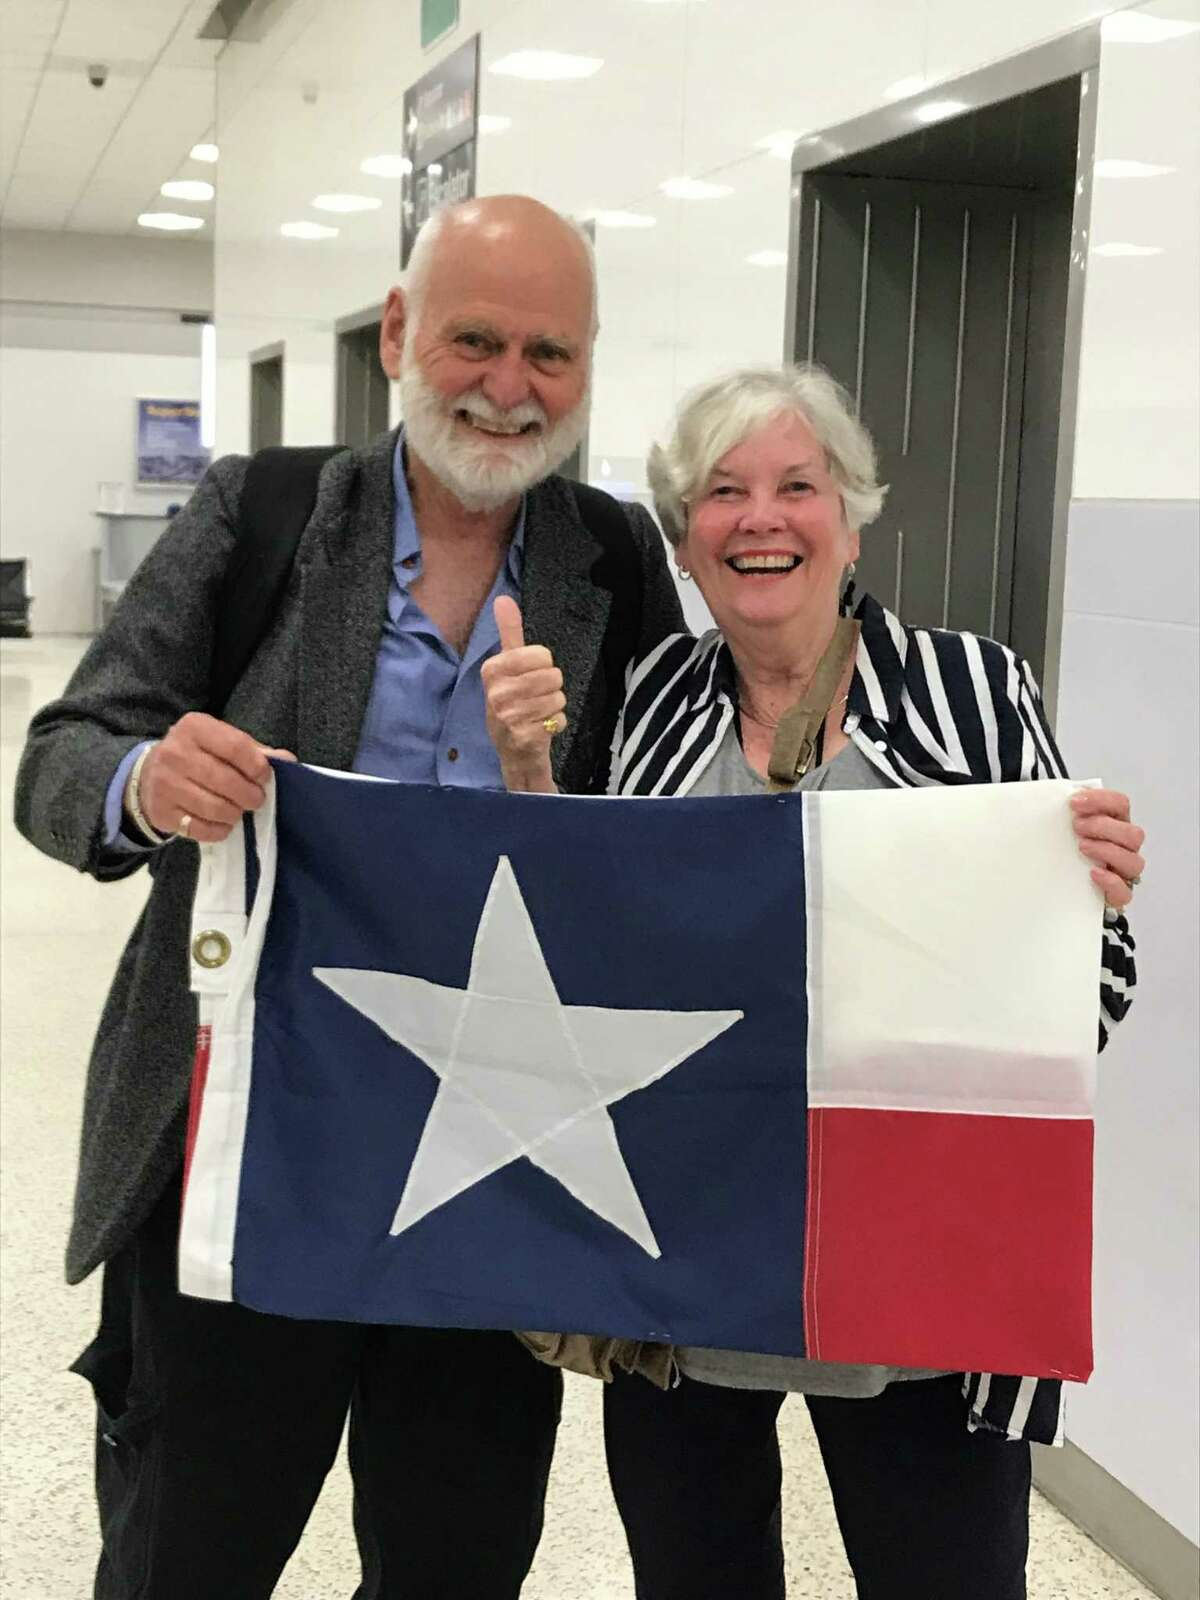 Pictured are John and Judy Midgley, from Australia, as they arrived in Houston in late September. Judy Midgley has been a 60-year pen pal with Barbara Hollier Cutler. From late September to late October, the ladies and their husbands traveled across the West as the Midgleys explore America.